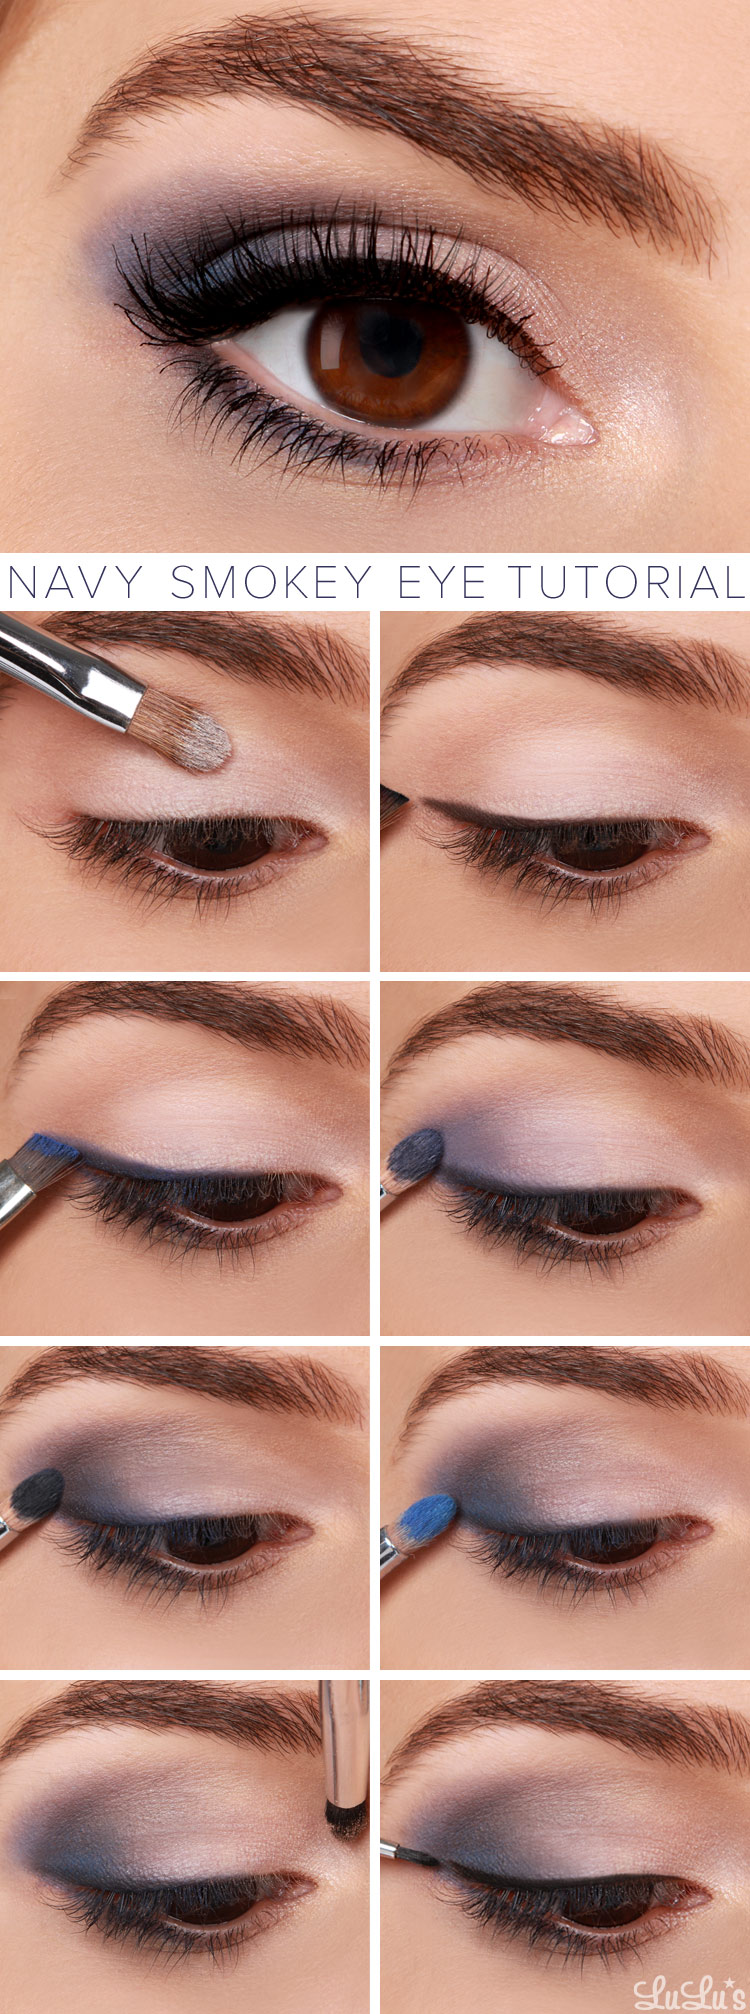 Smokey Eyeshadow Tutorial: Lulus How-To: Navy Smokey Eye Makeup Tutorial